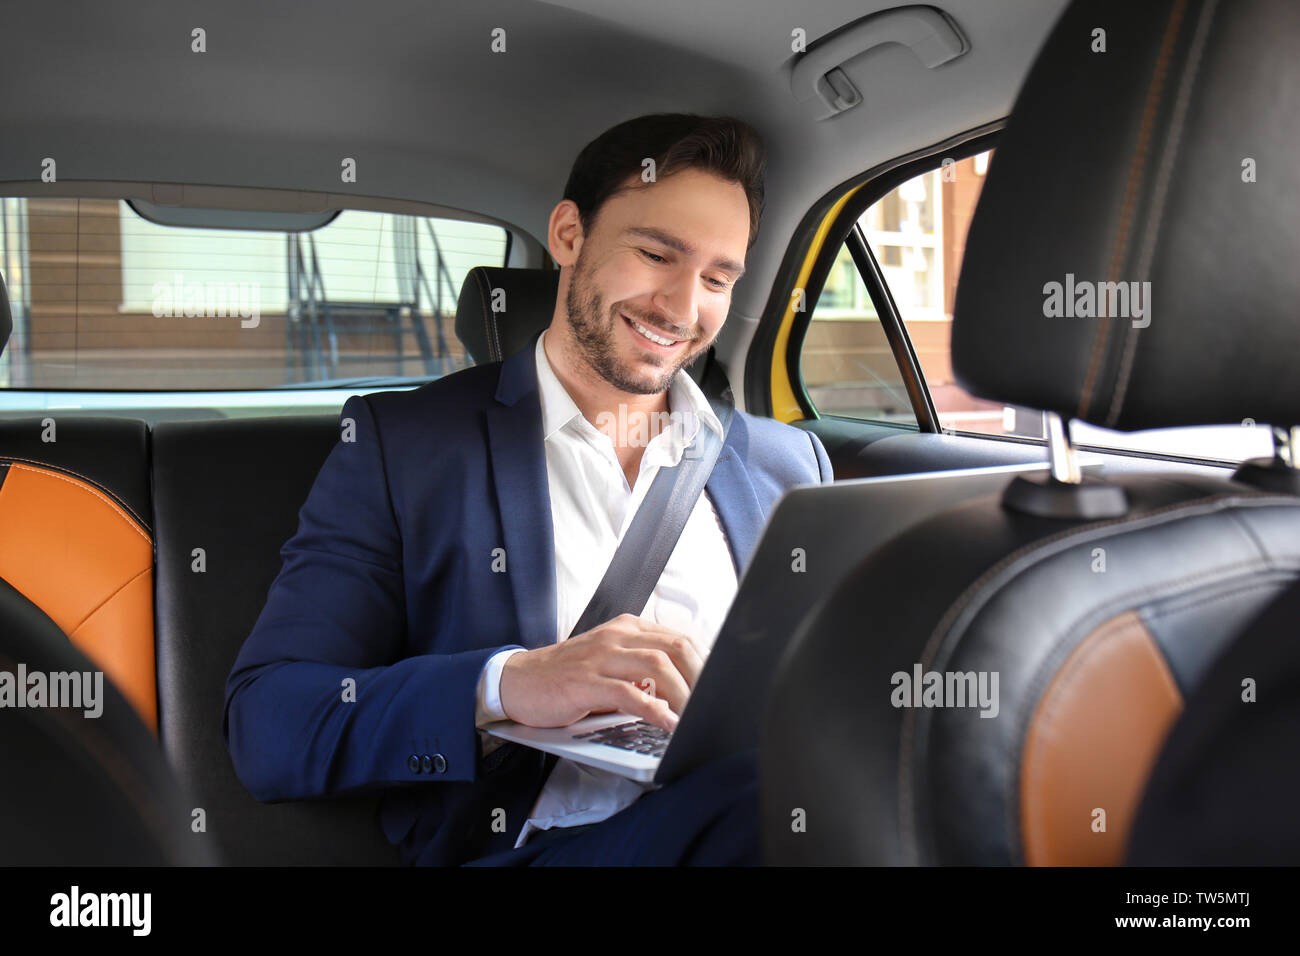 Handsome man with laptop sitting in taxi car - Stock Image